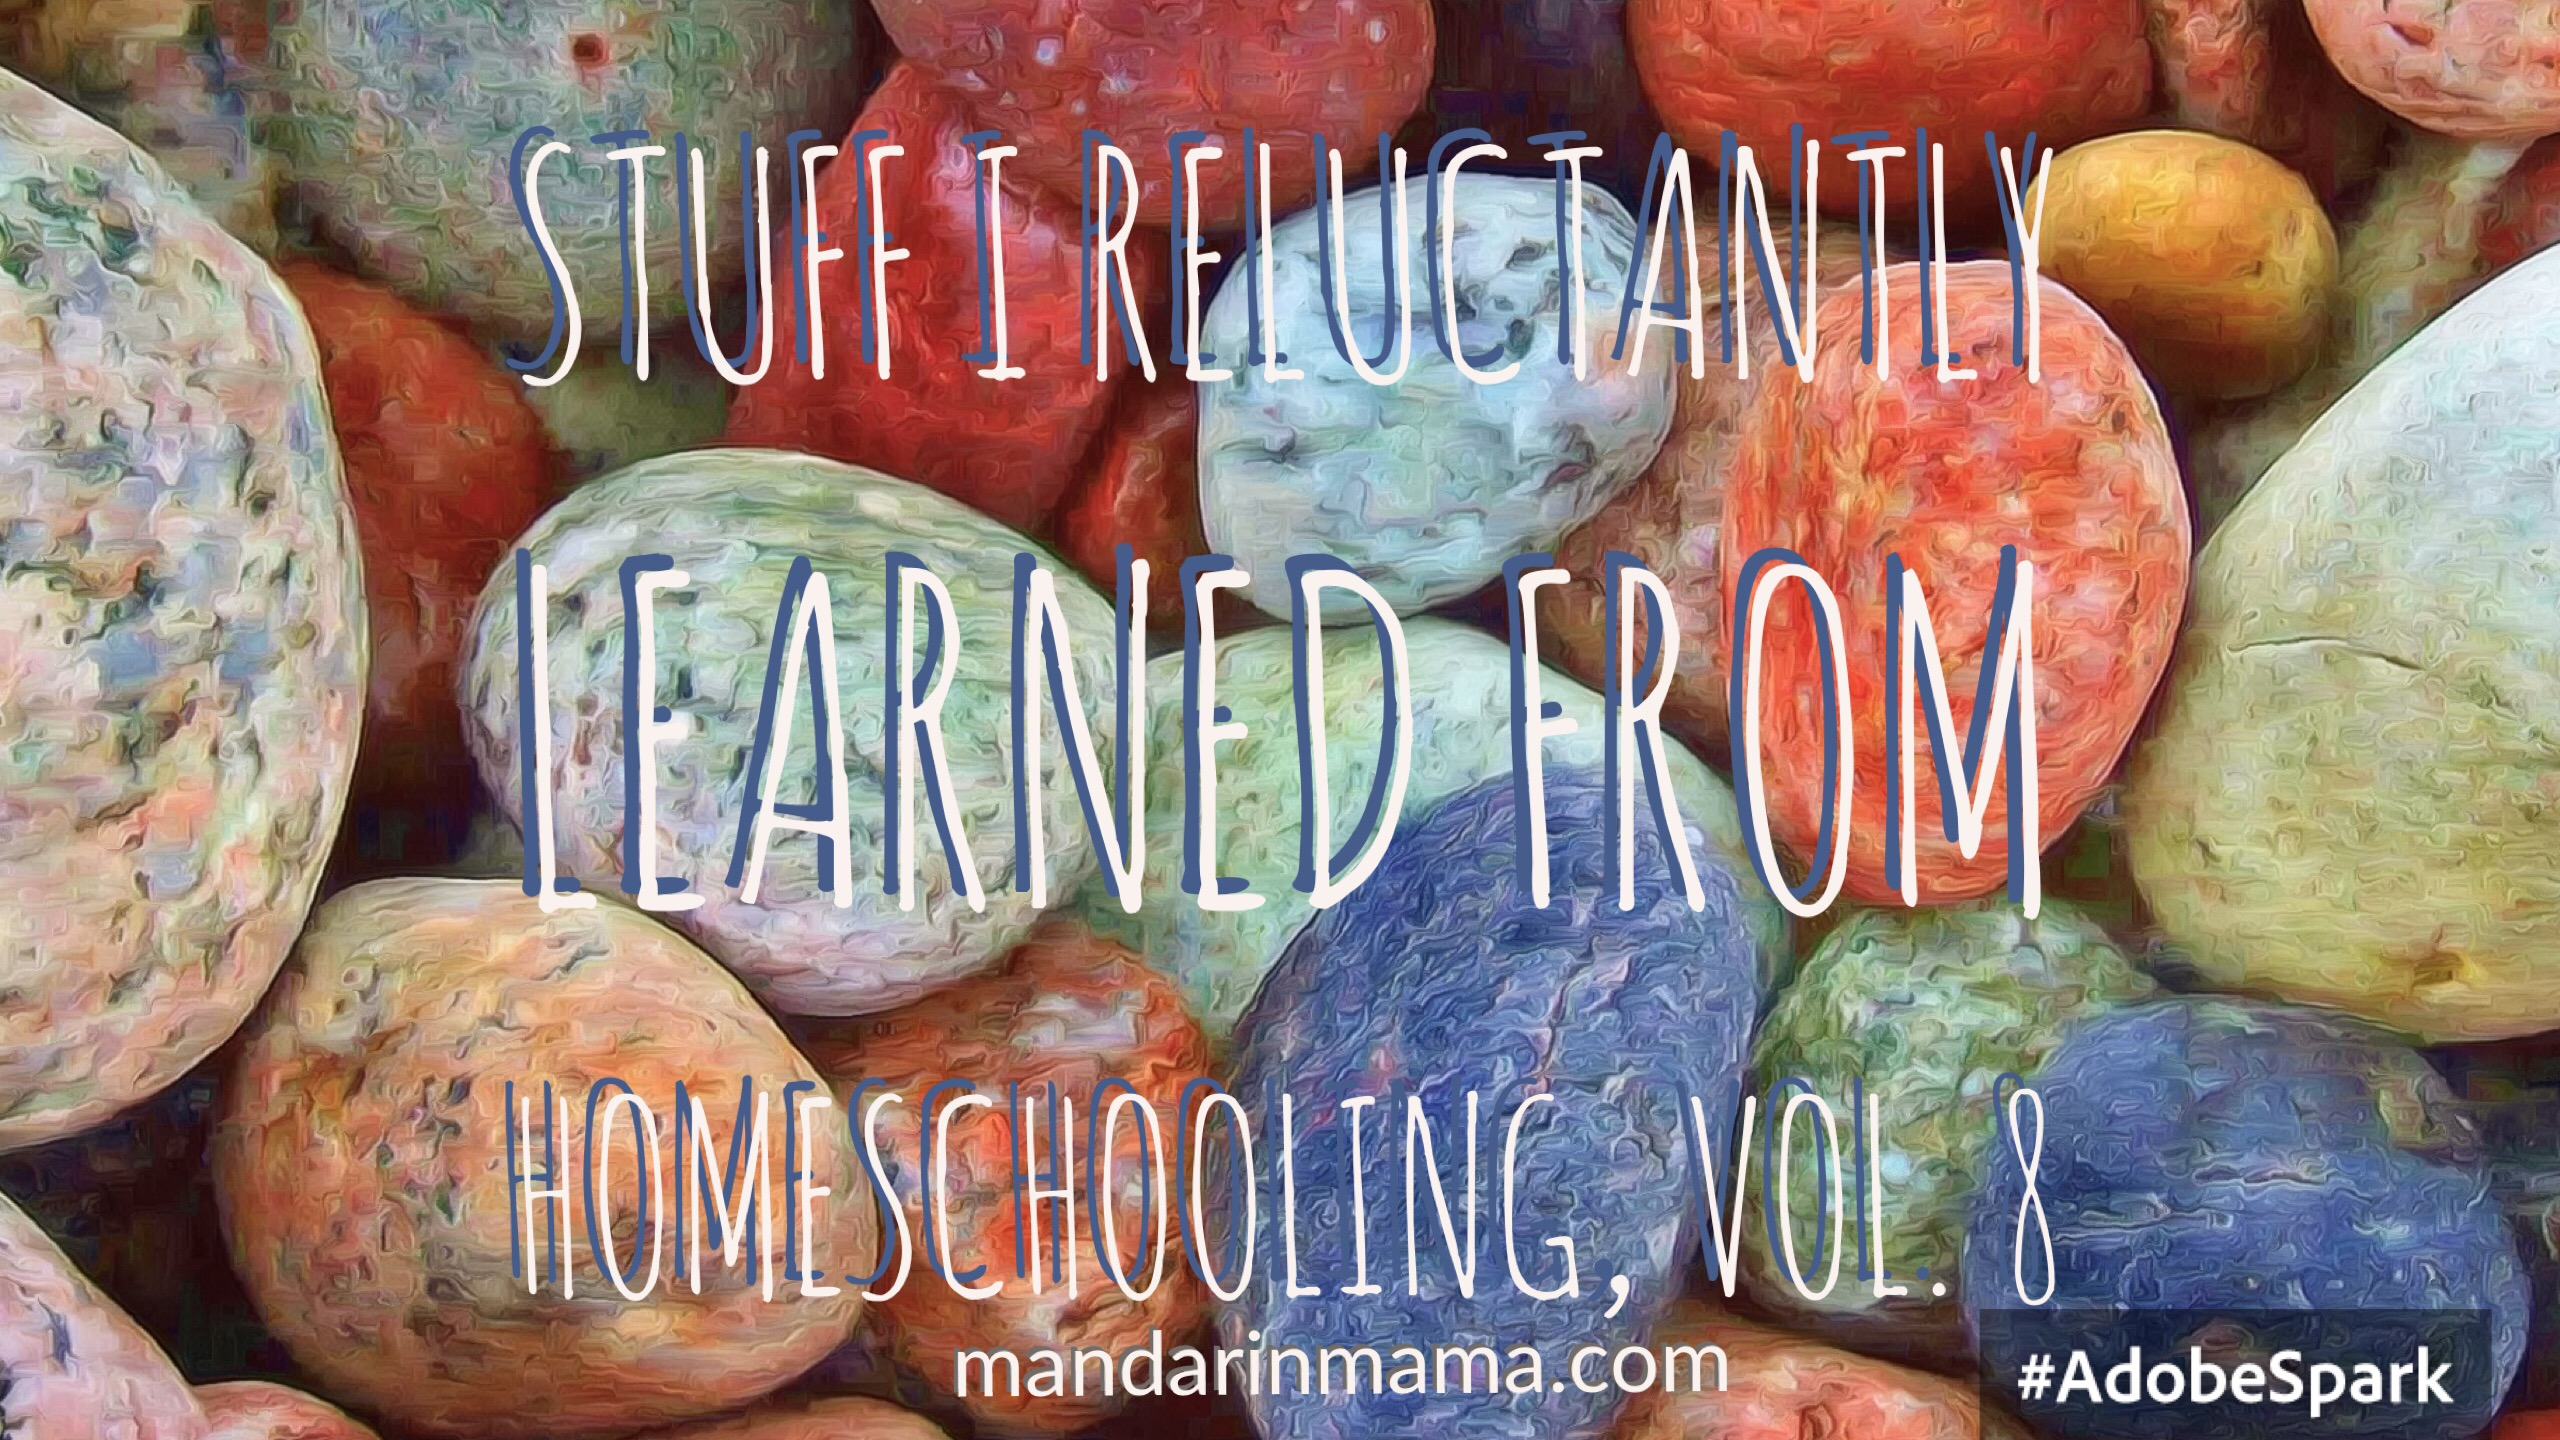 Stuff I Reluctantly Learned from Homeschooling, Vol. 8